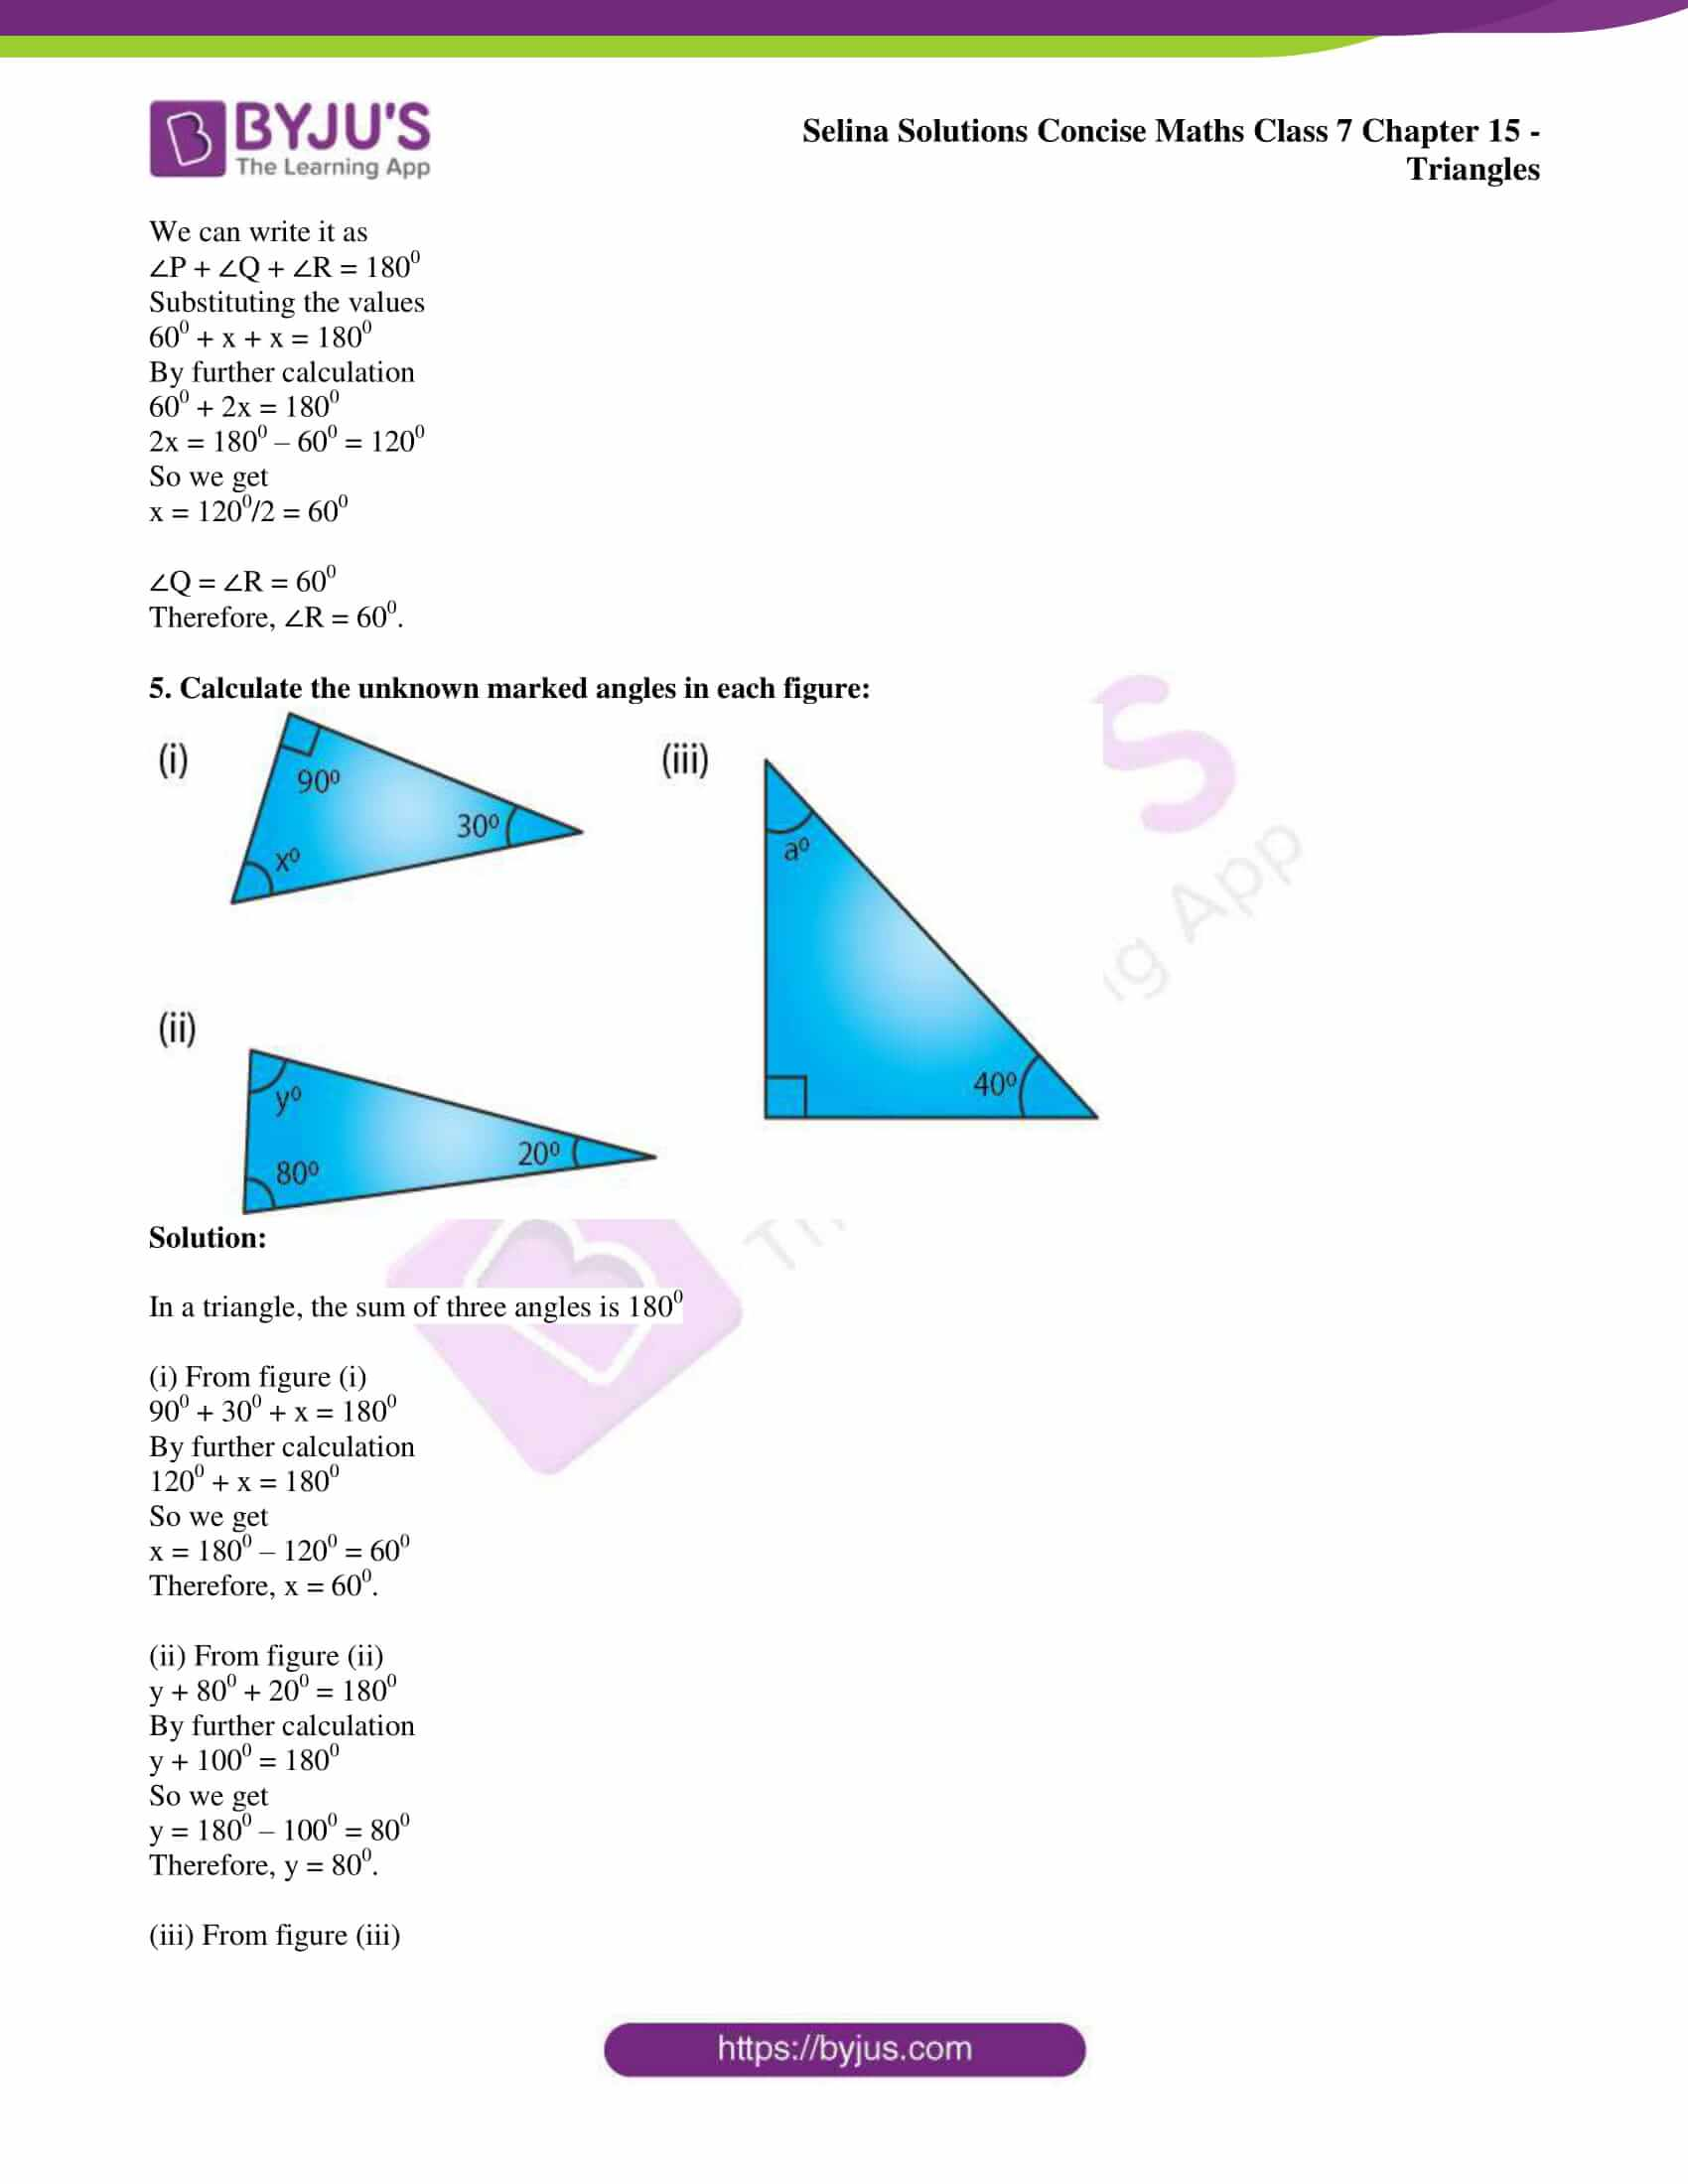 selina sol concise maths class 7 chapter 15 ex a 2